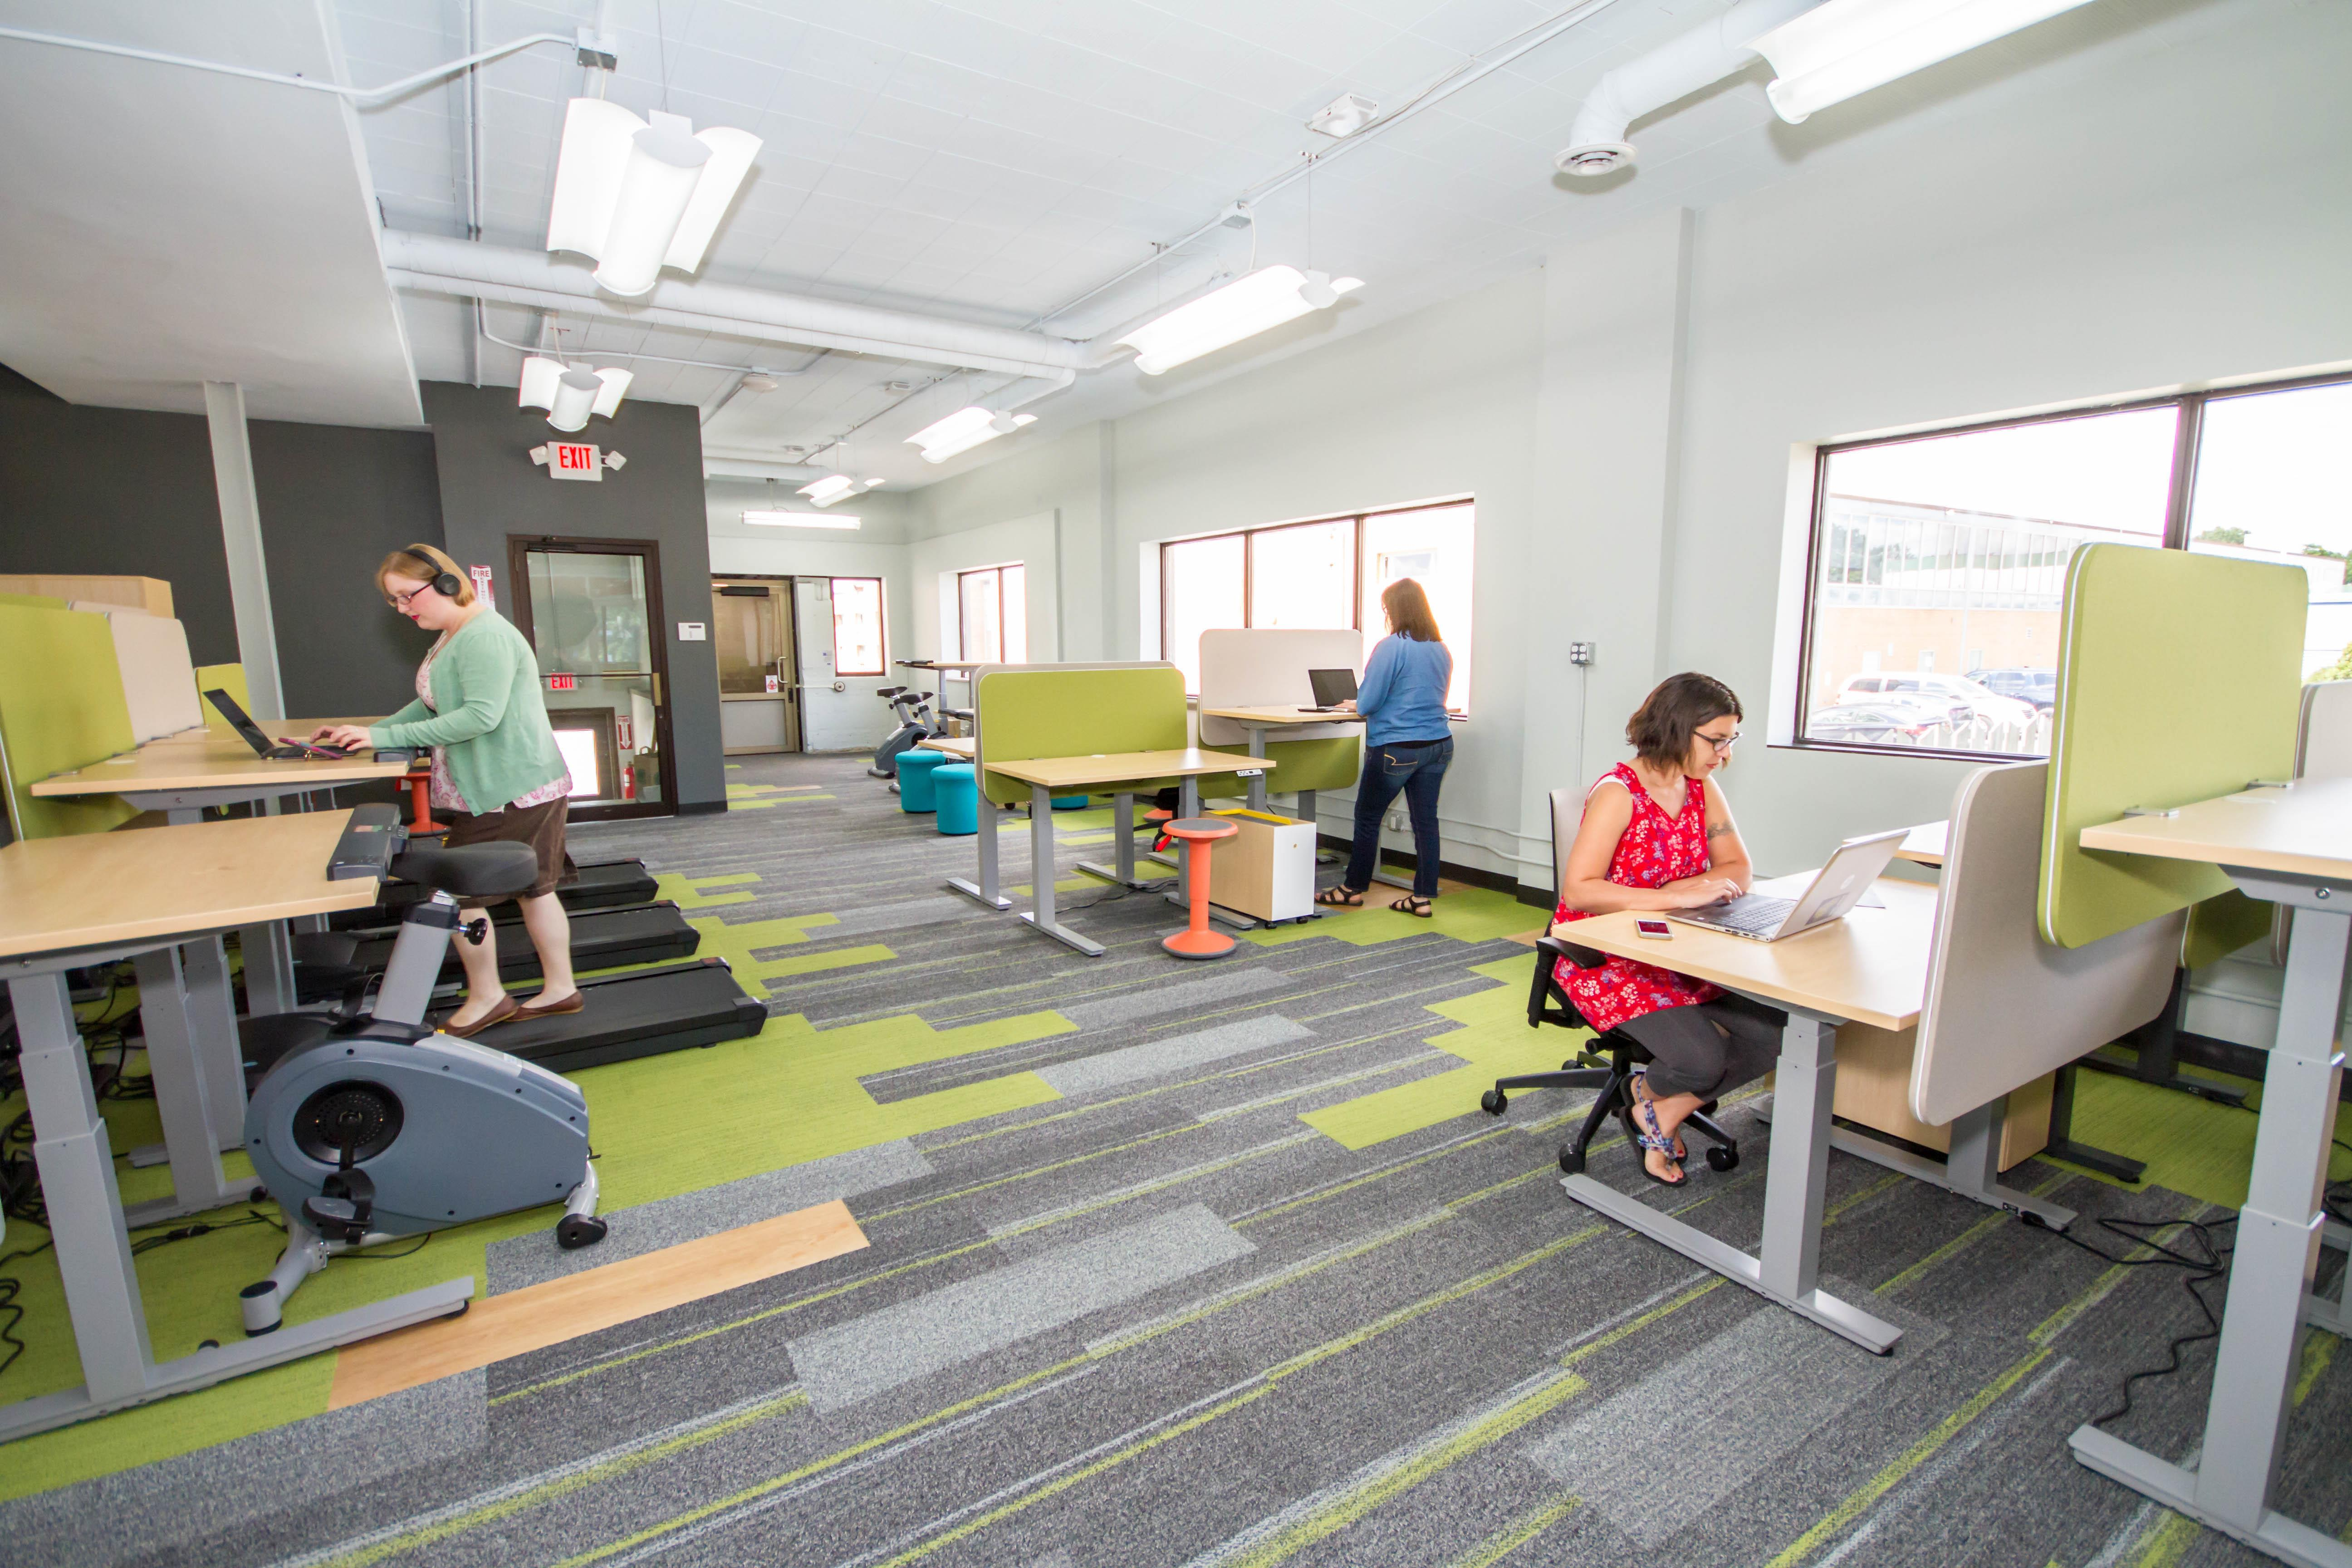 Work it Coworking - Membership Shared Work space w/ Fitness